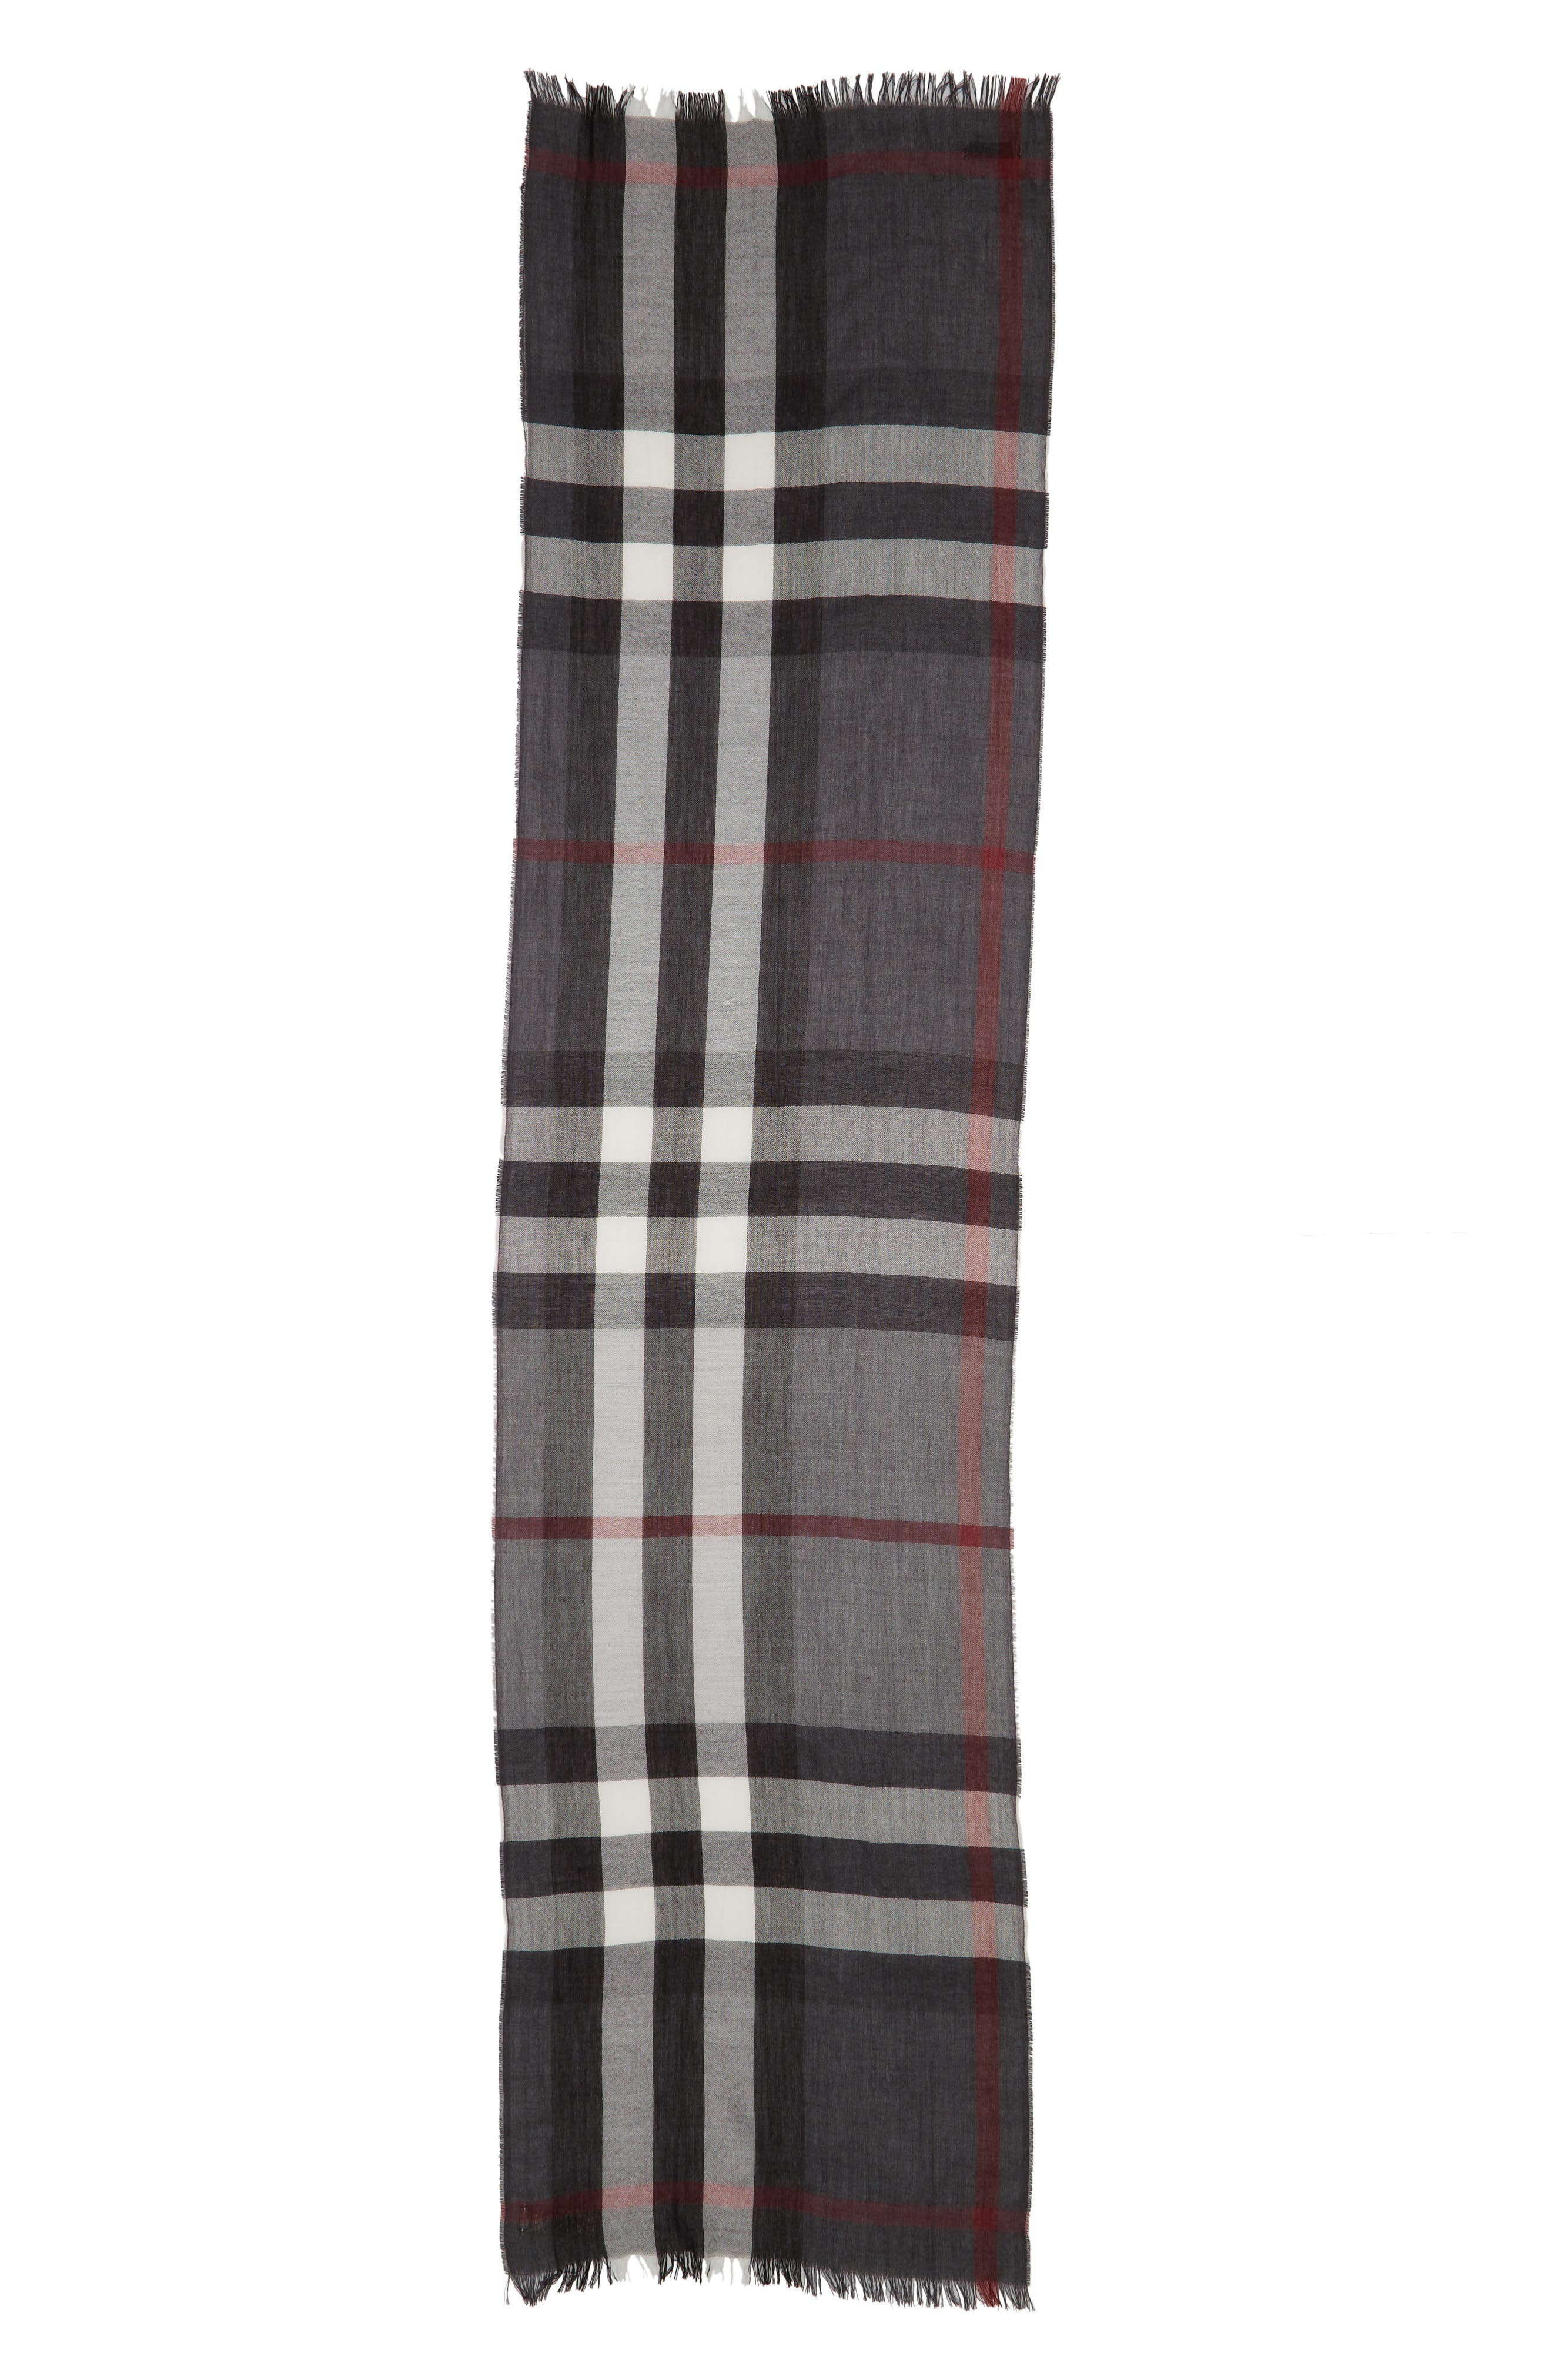 Tonal Lightweight Check Cashmere Wool Scarf,                             Main thumbnail 1, color,                             001